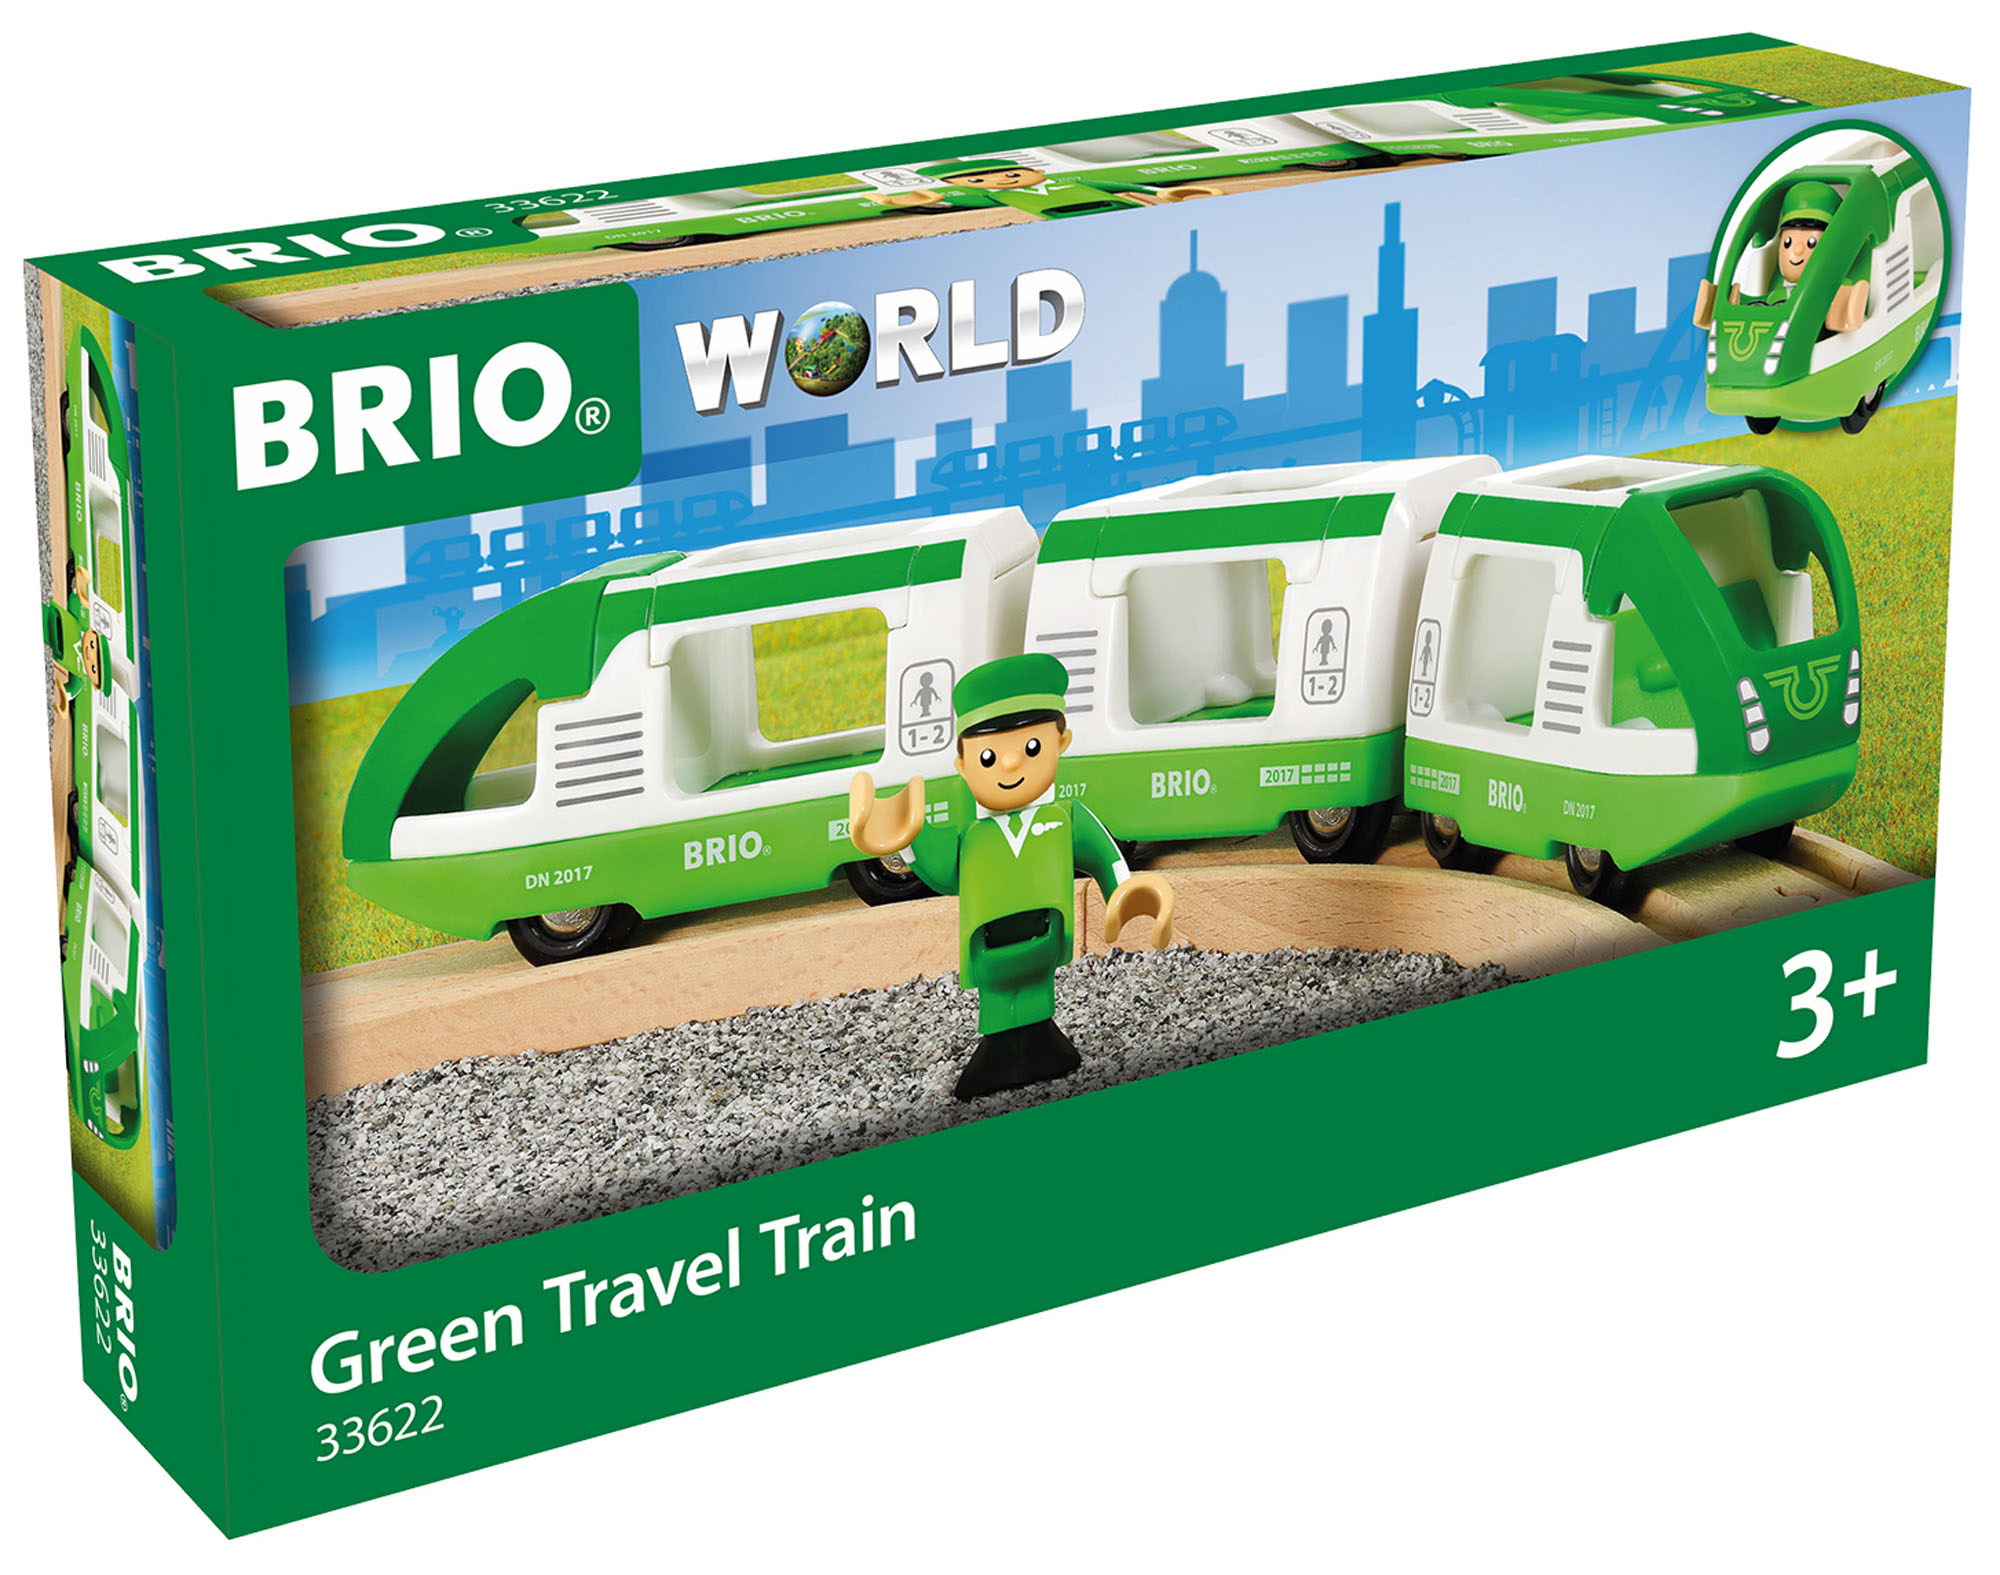 brio train set instructions